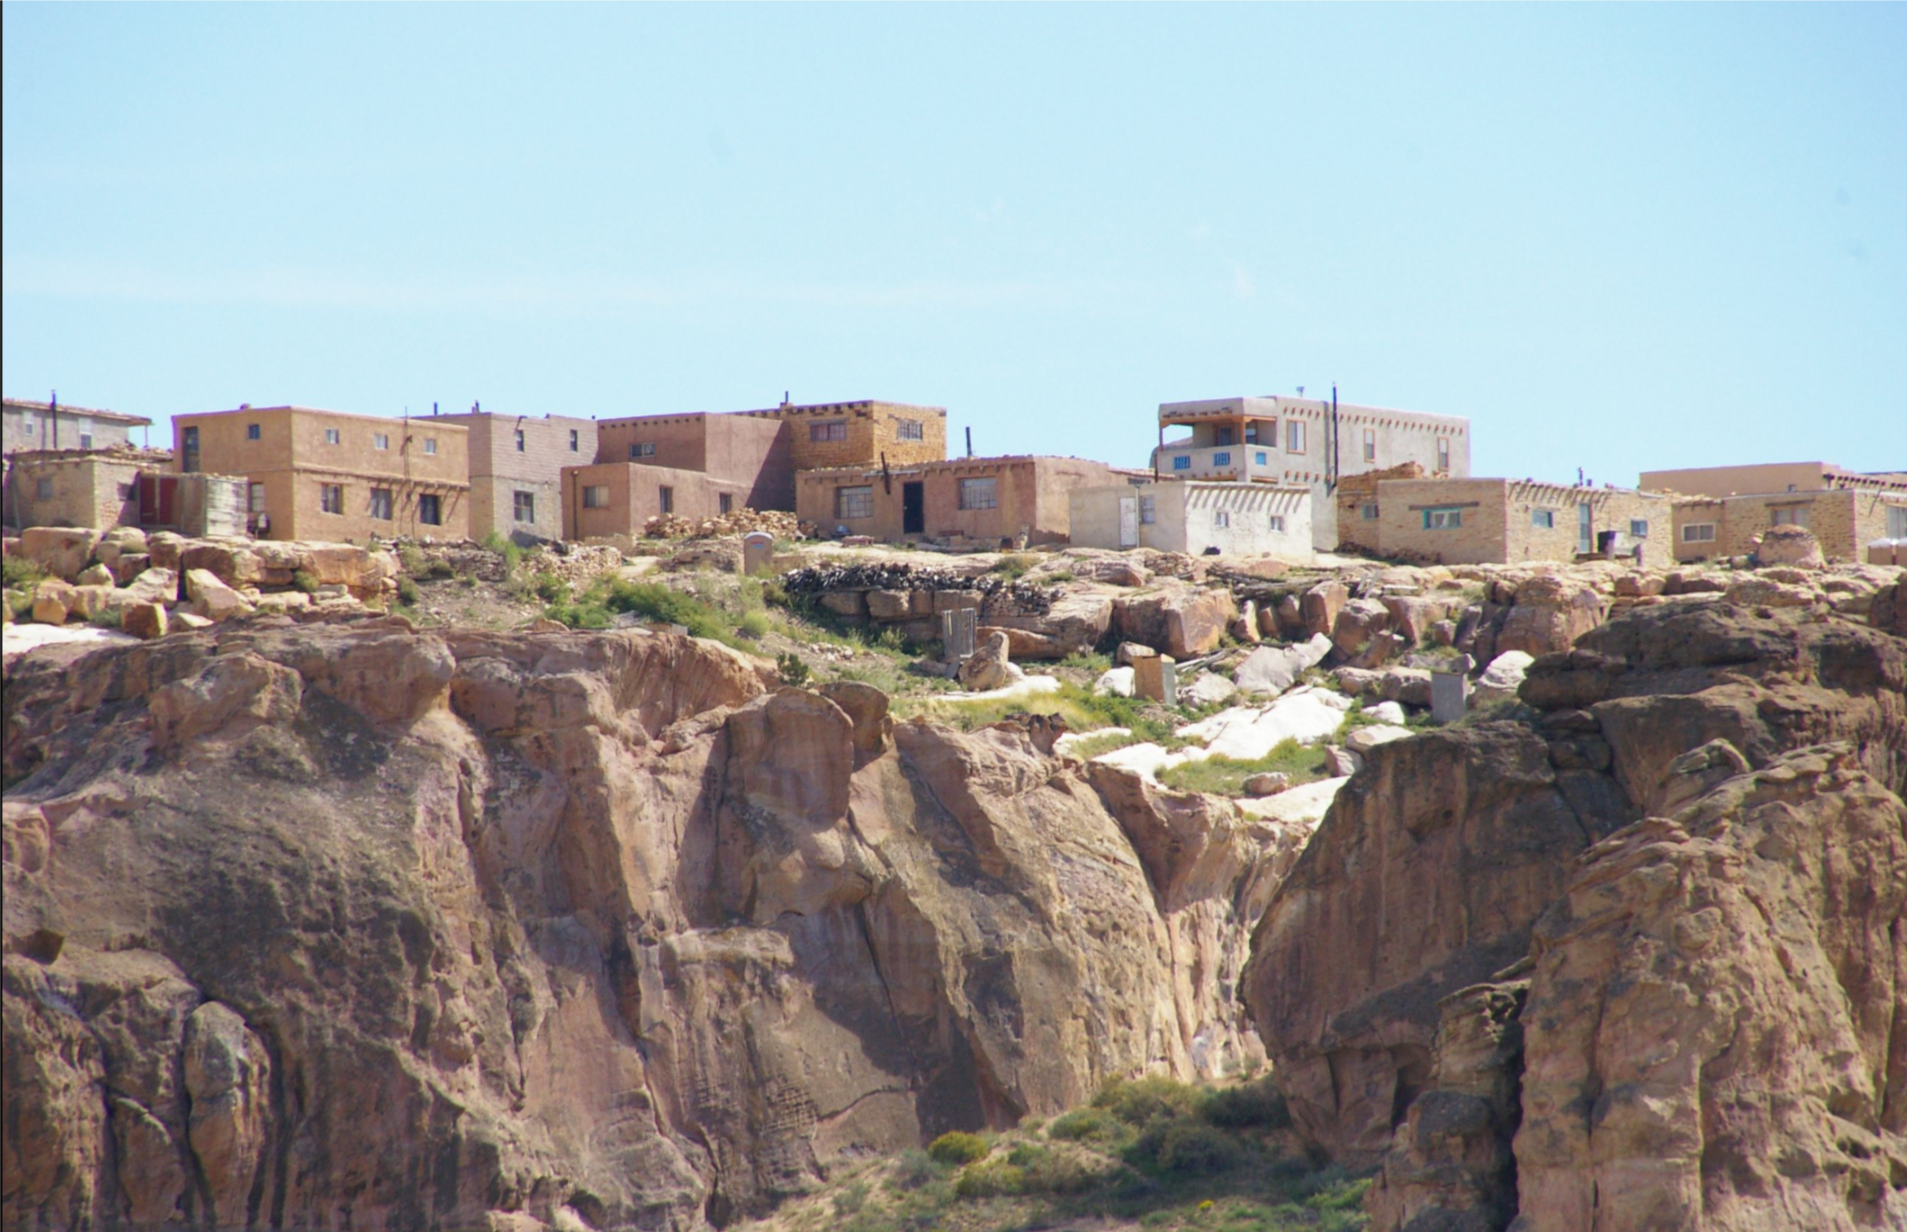 Dwellings on the Acoma Pueblo in New Mexico.